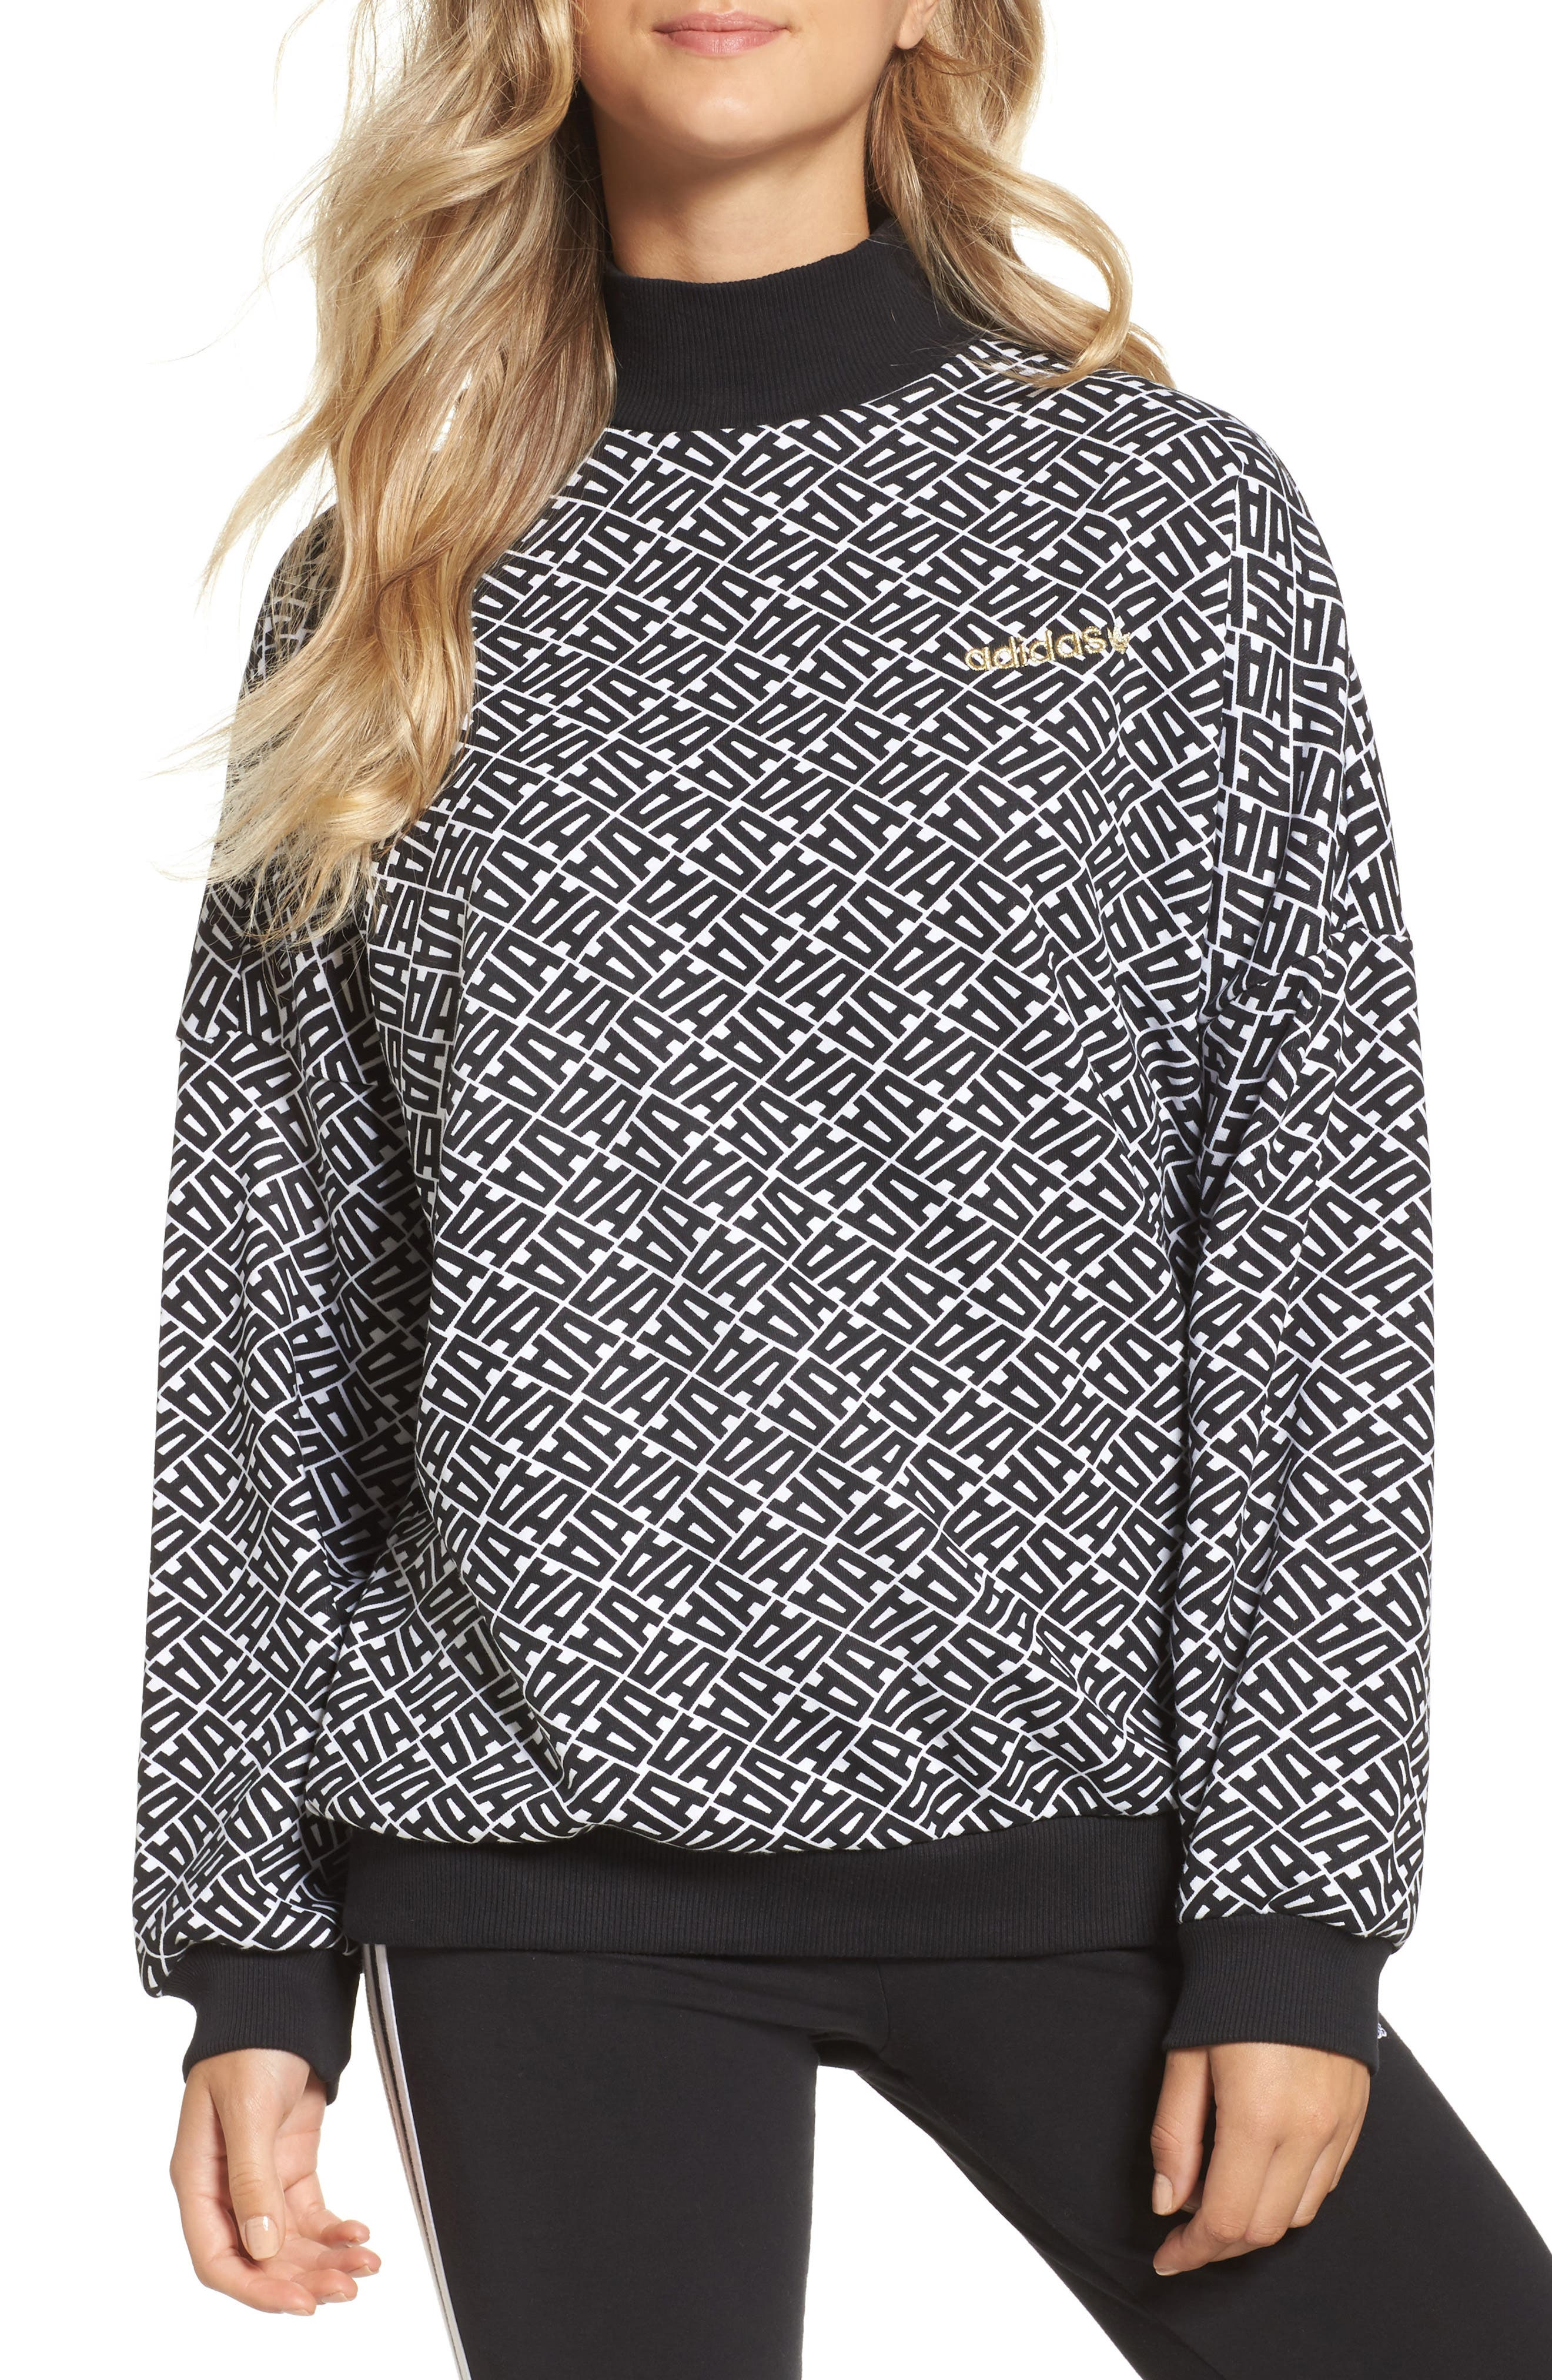 Alternate Image 1 Selected - adidas AOP Print Sweatshirt